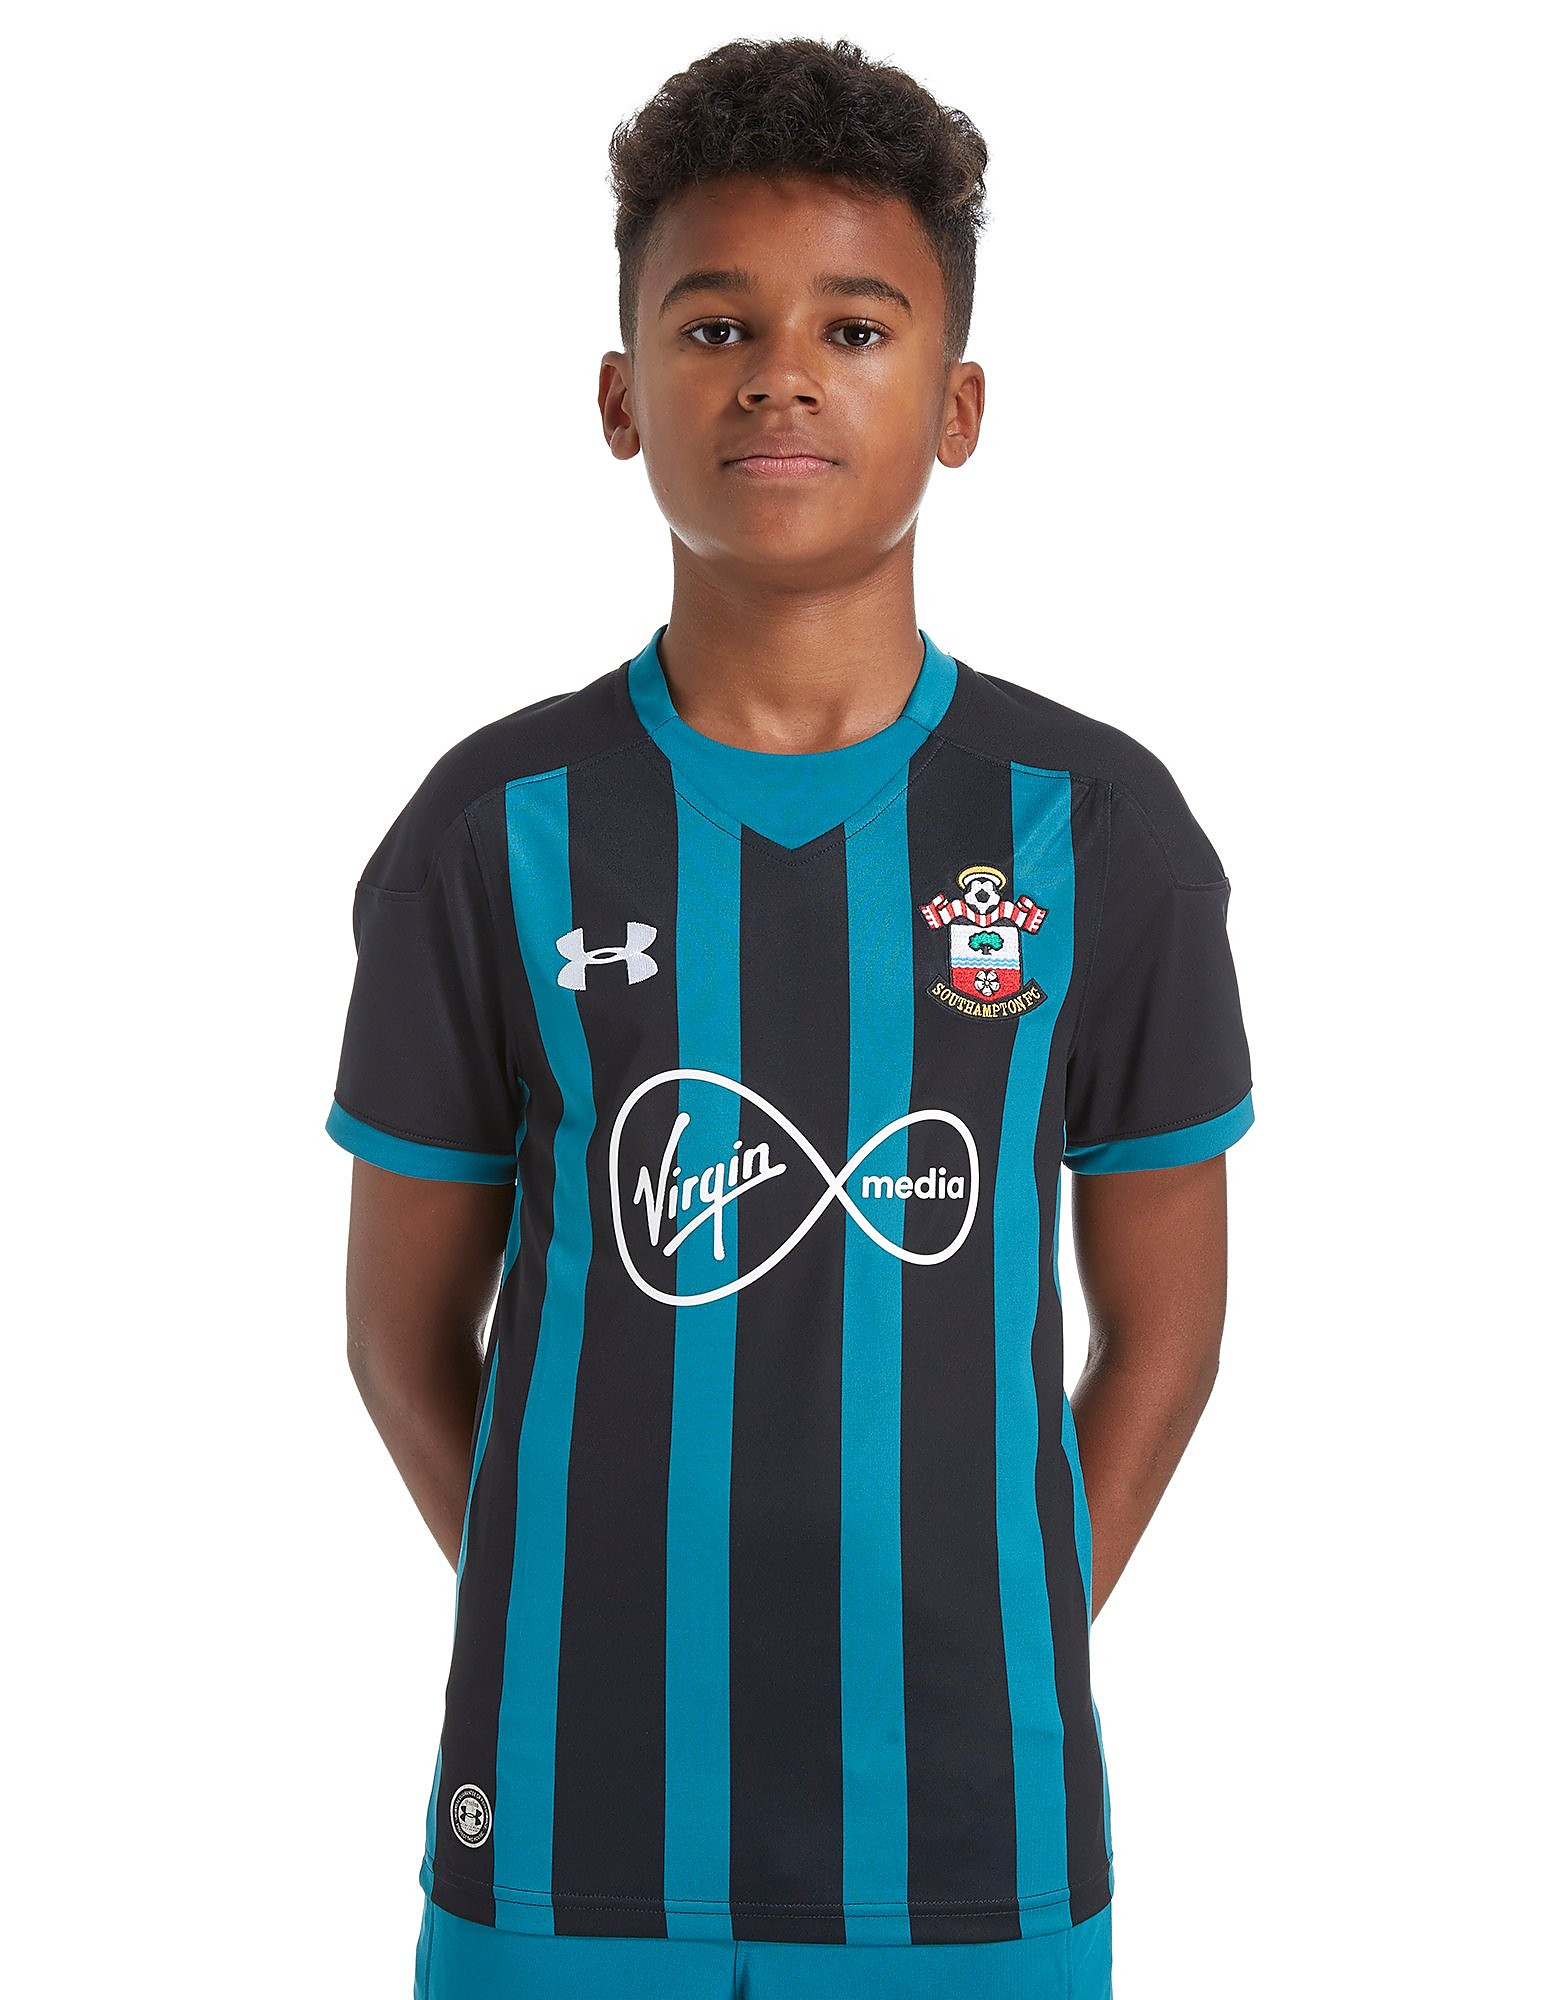 Under Armour Southampton FC 2017/18 Away Shirt Junior PRE ORDER